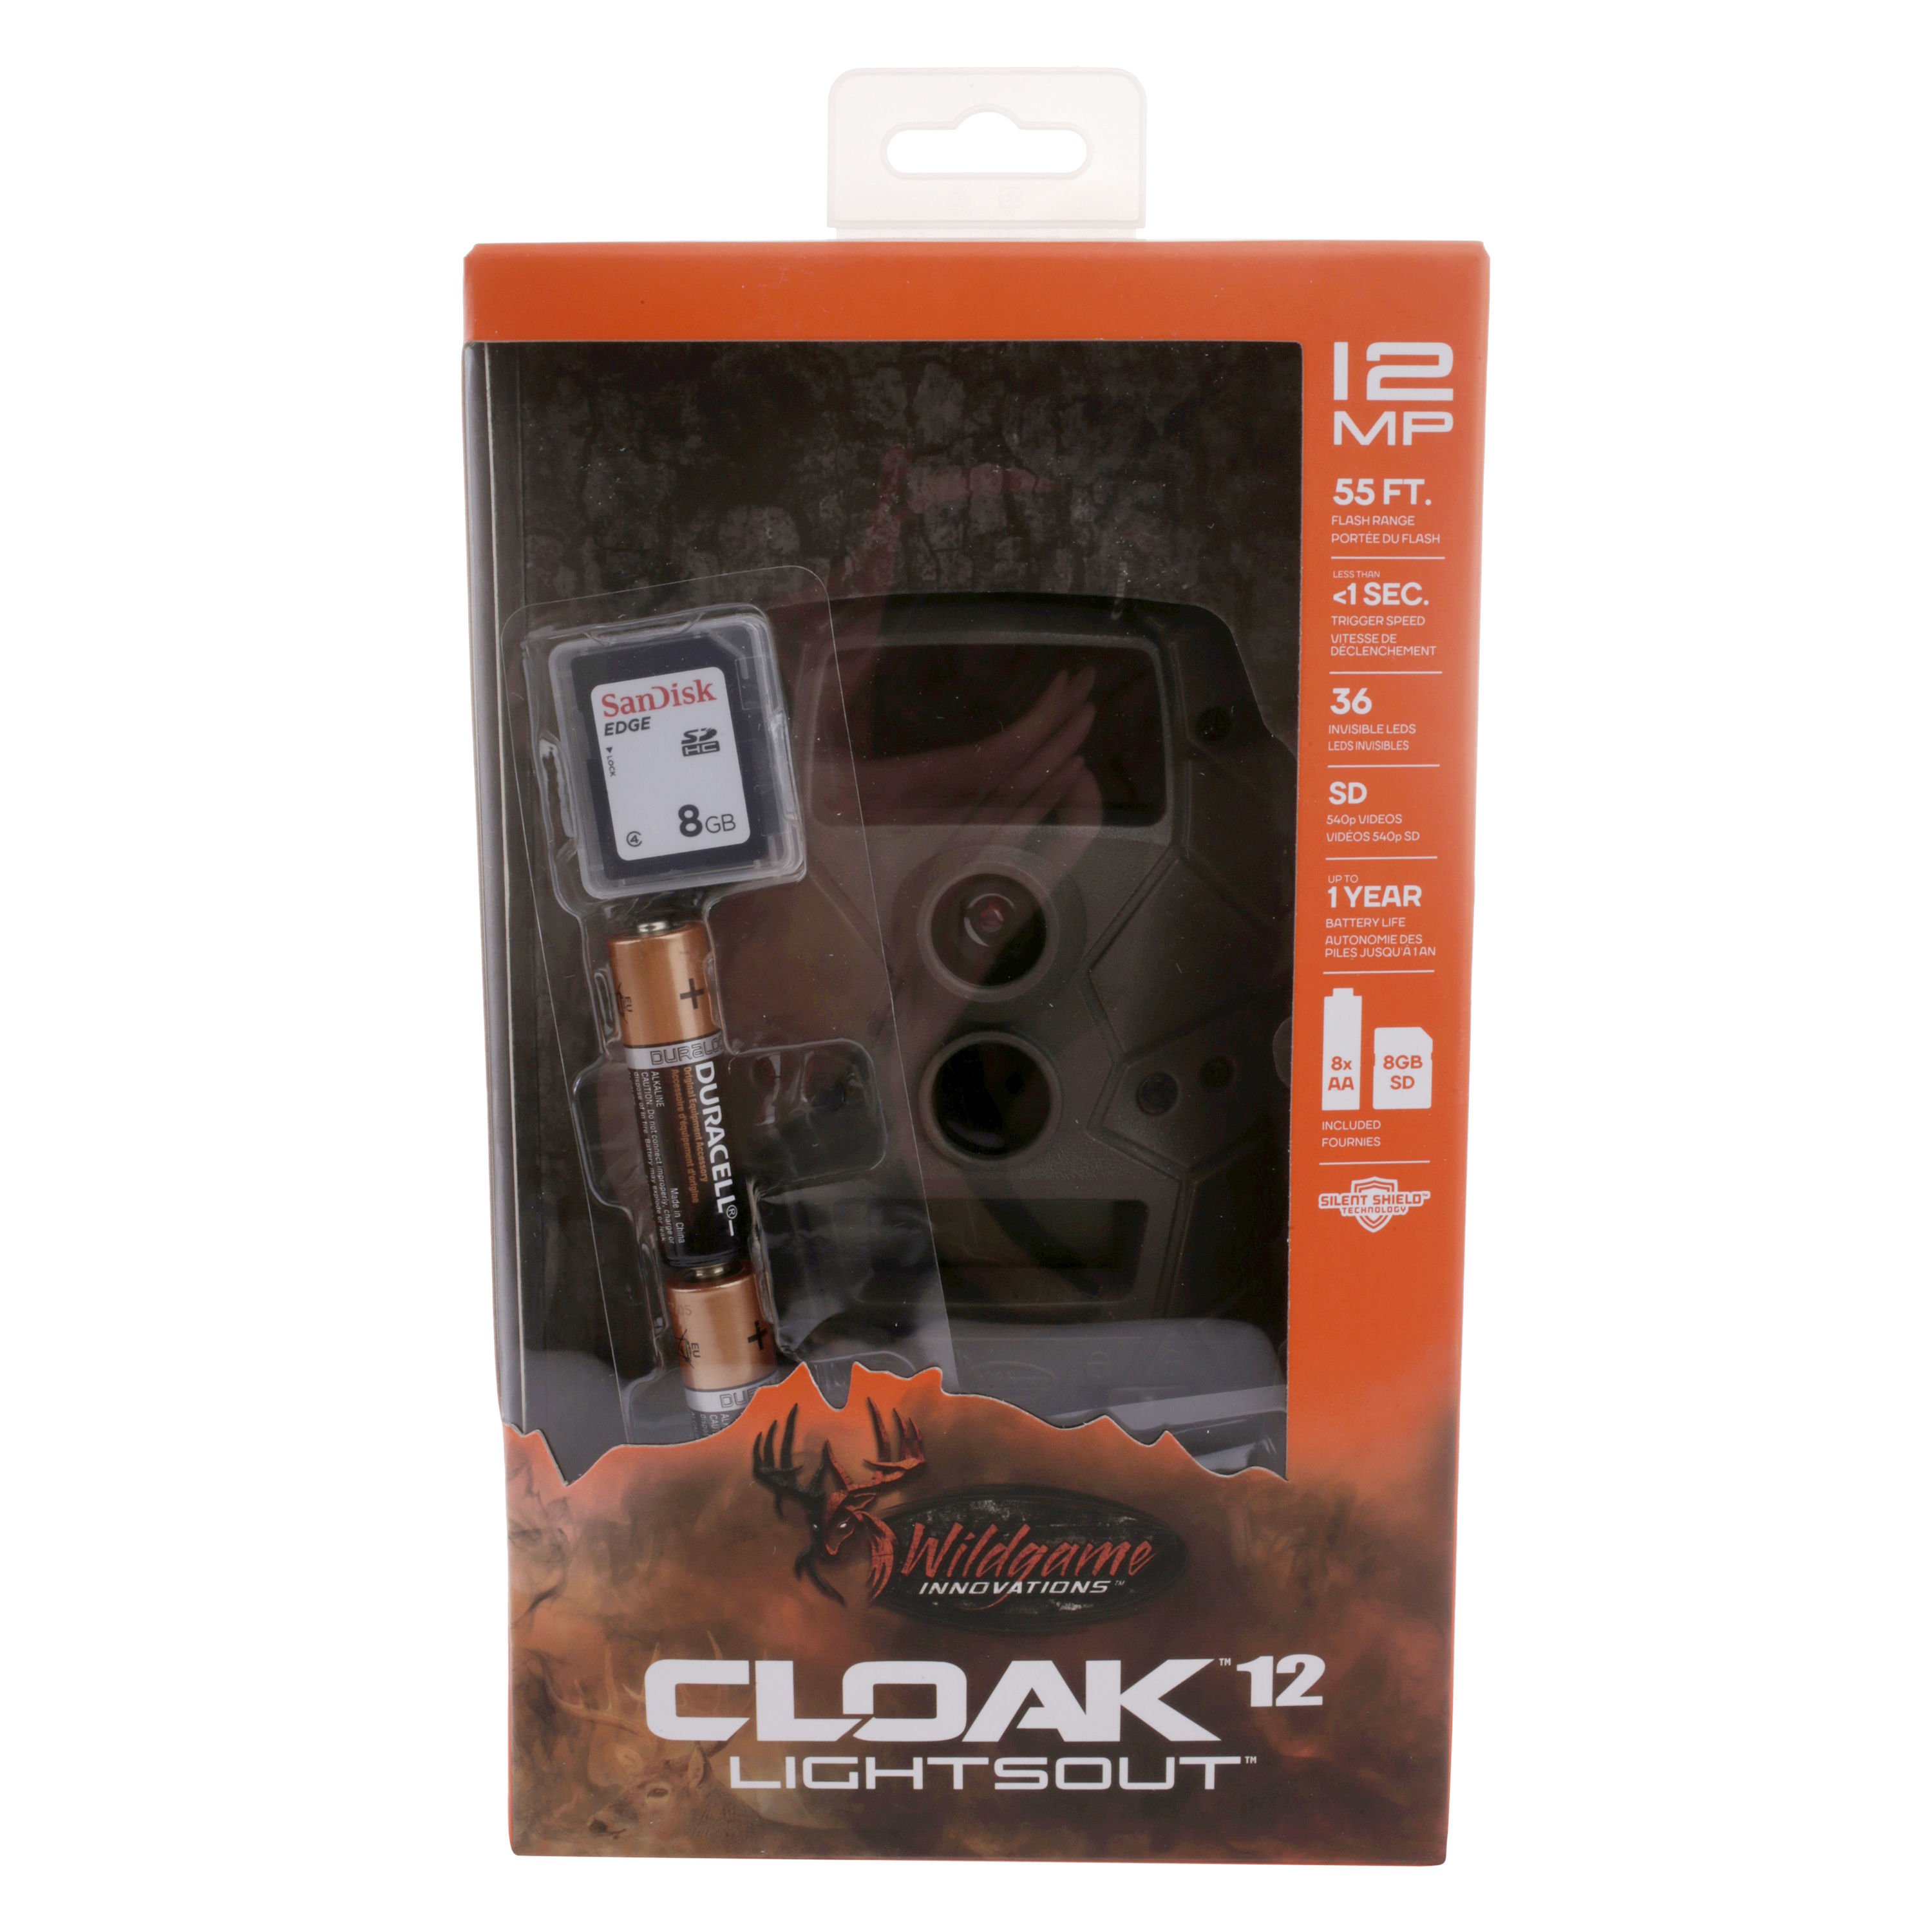 Wildgame Innovations Cloak 12 Lightsout